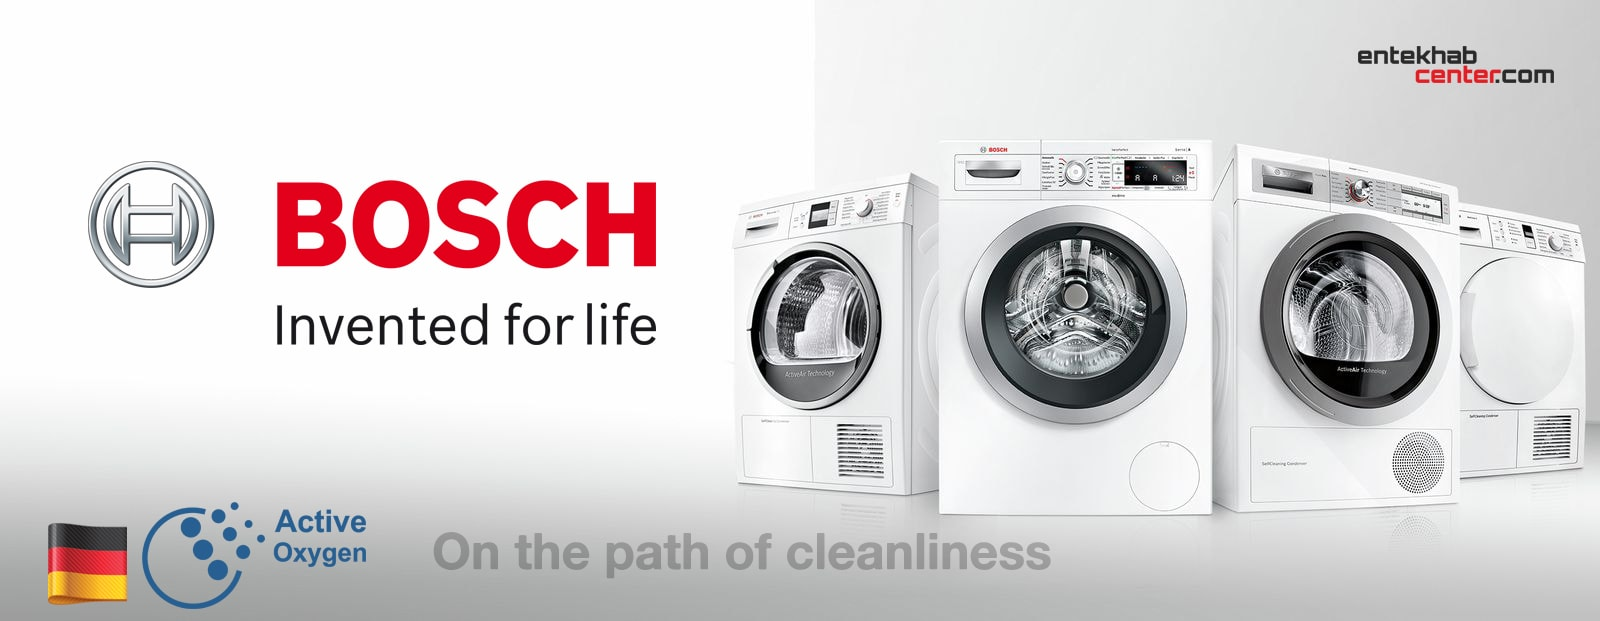 Bosch Washing Machine in India – Review